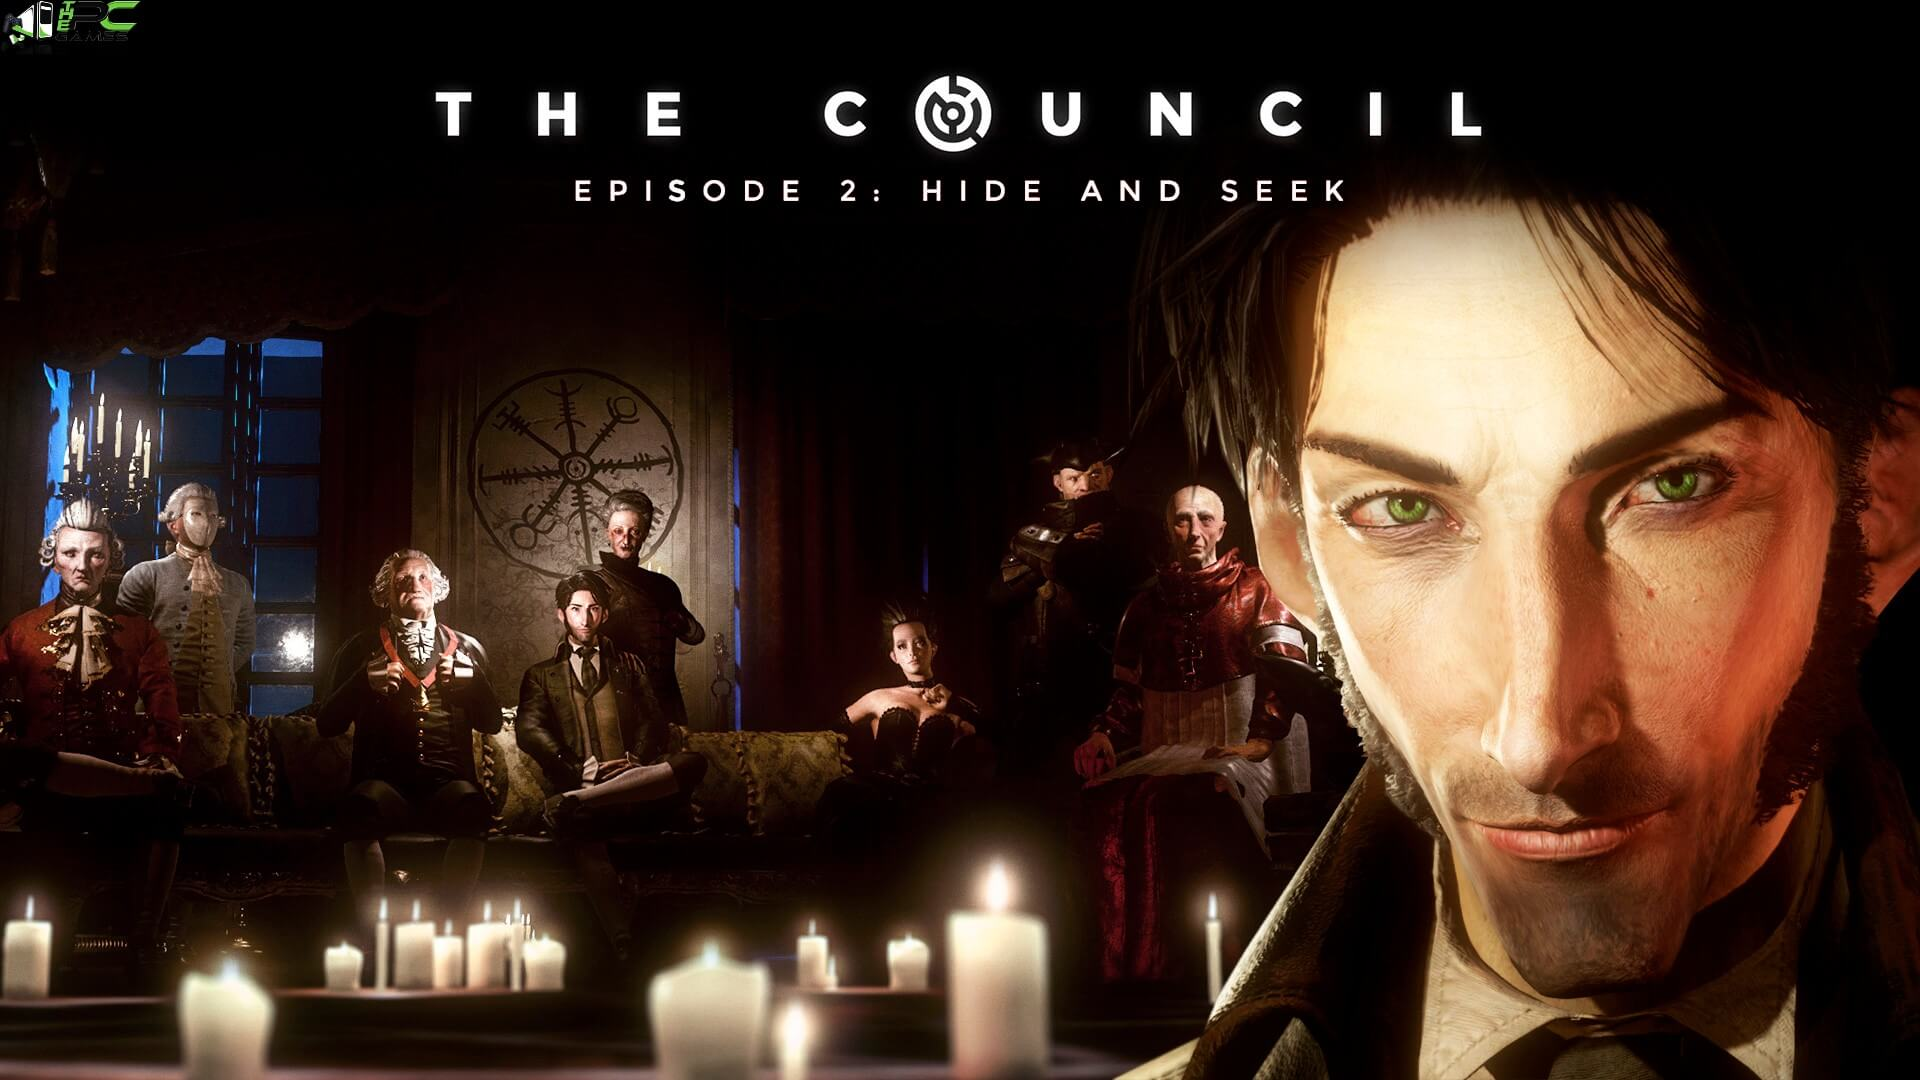 The Council Episode 2 Free Download